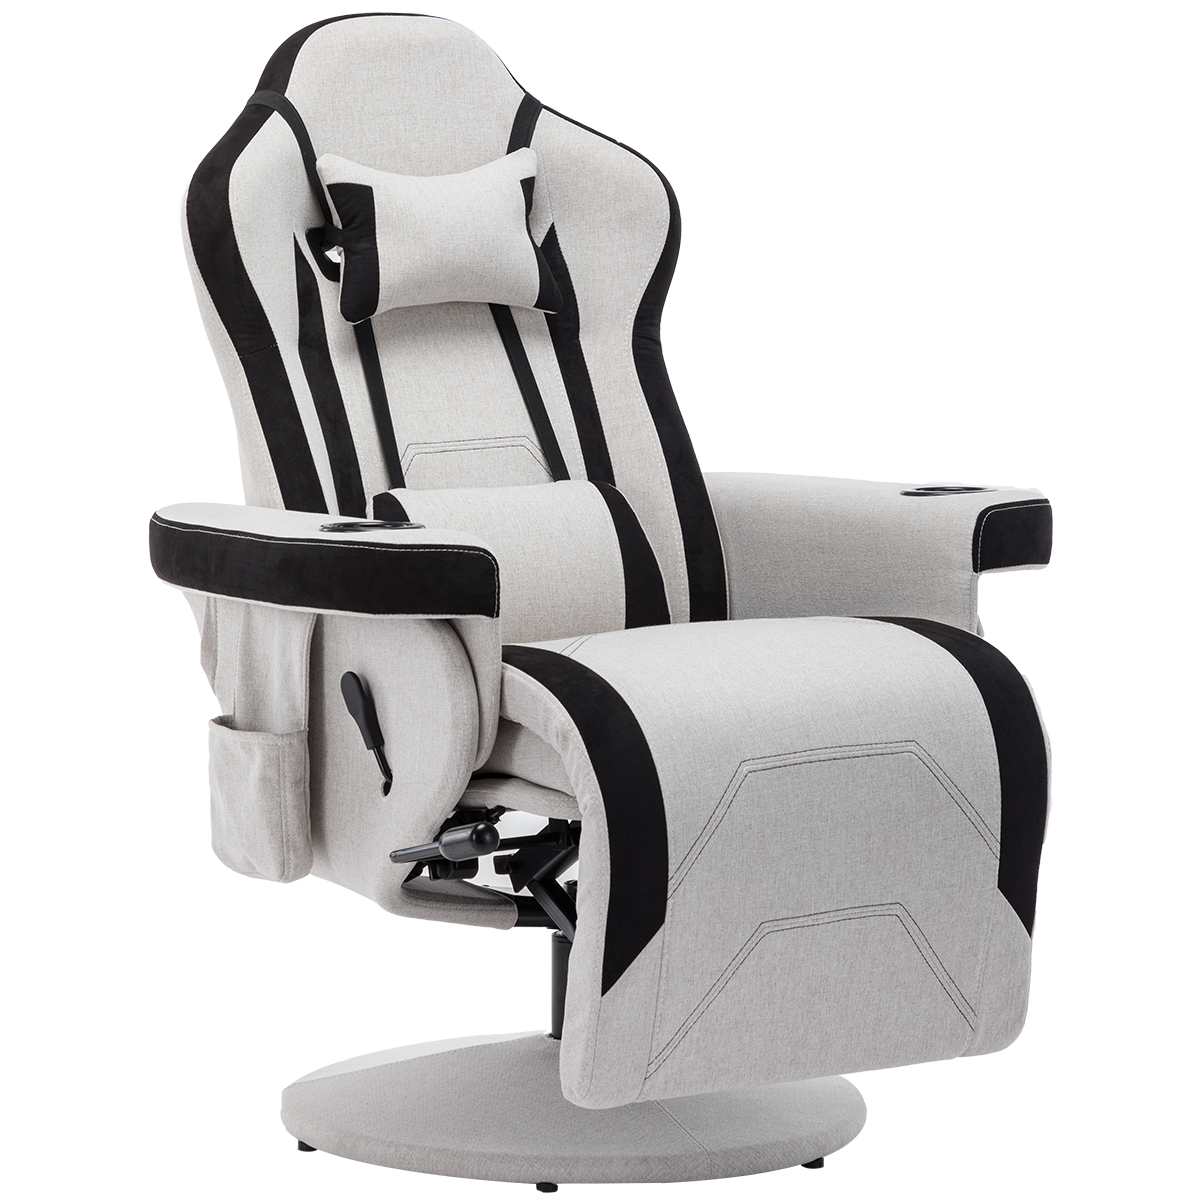 Reclining Gaming Chair-Adjustable Headrest and Lumbar Support